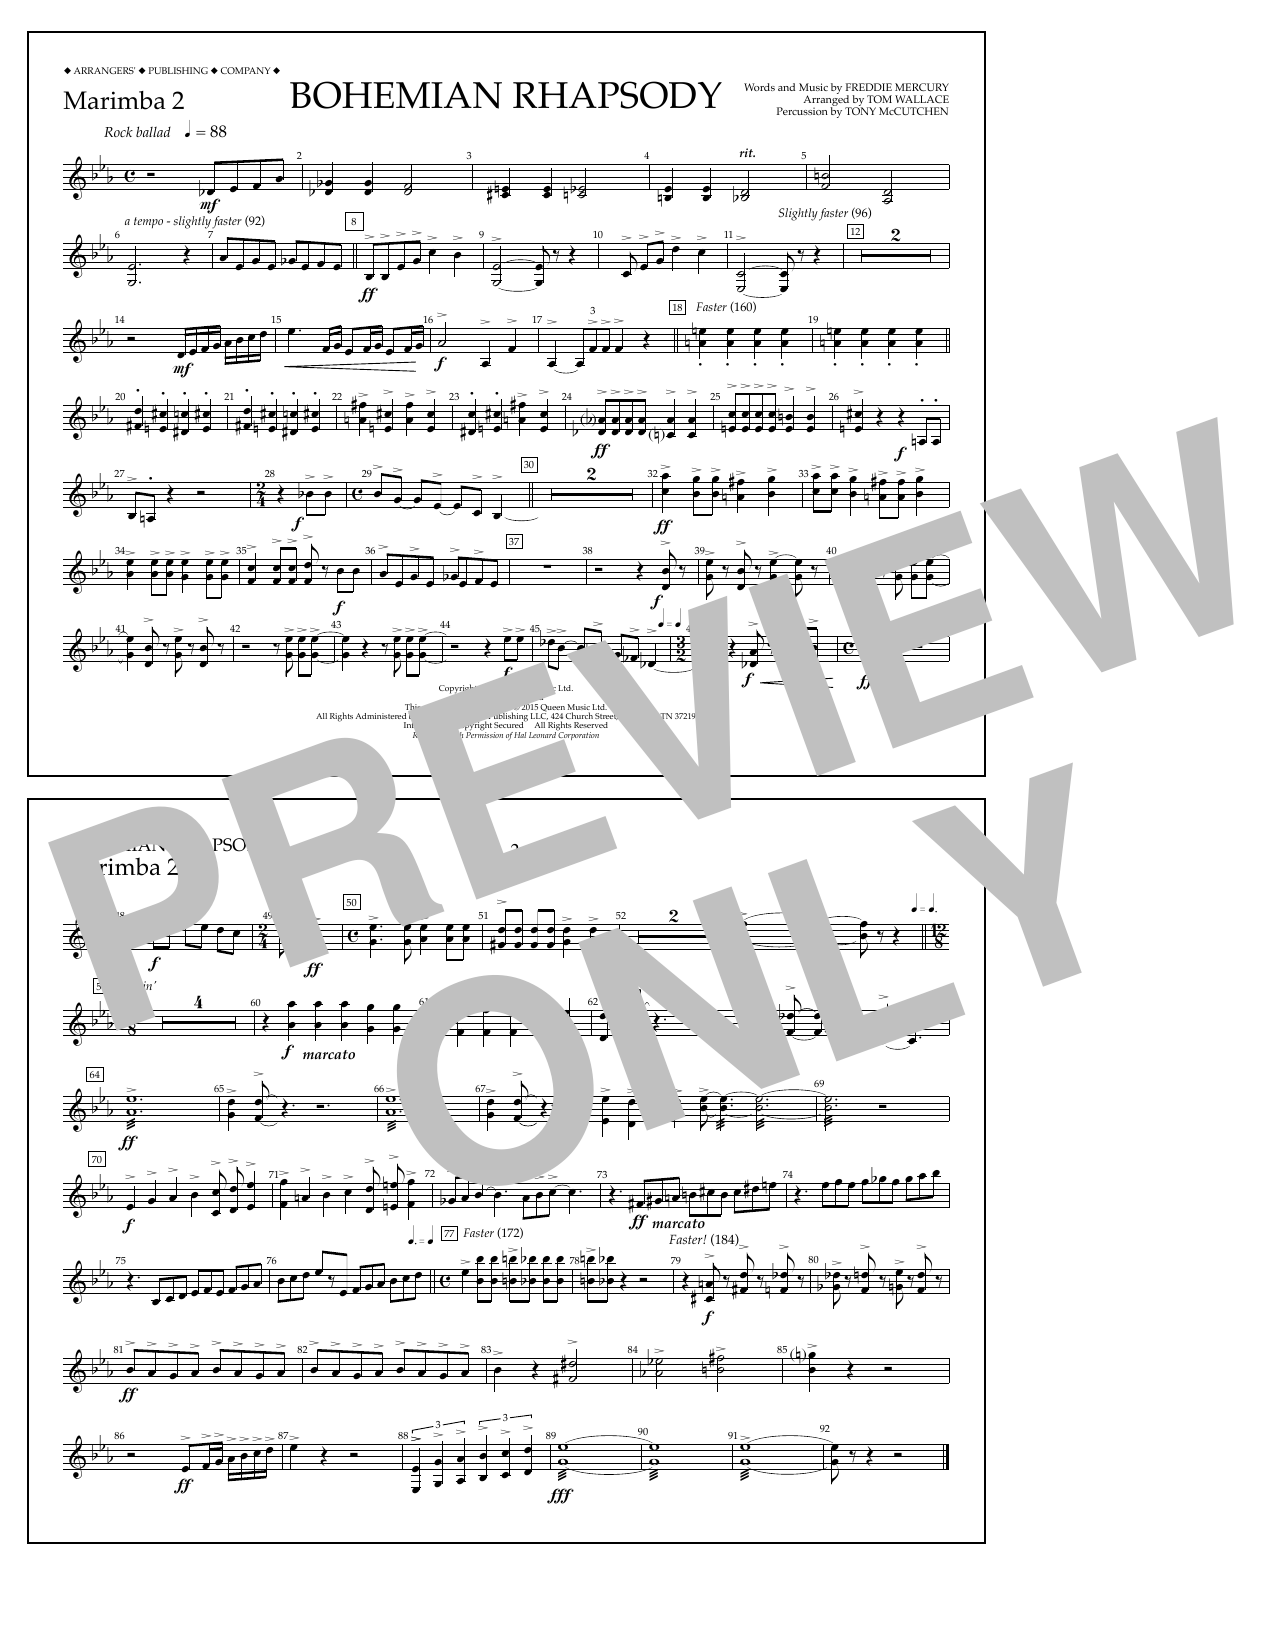 Tom Wallace Bohemian Rhapsody - Marimba 2 sheet music notes and chords